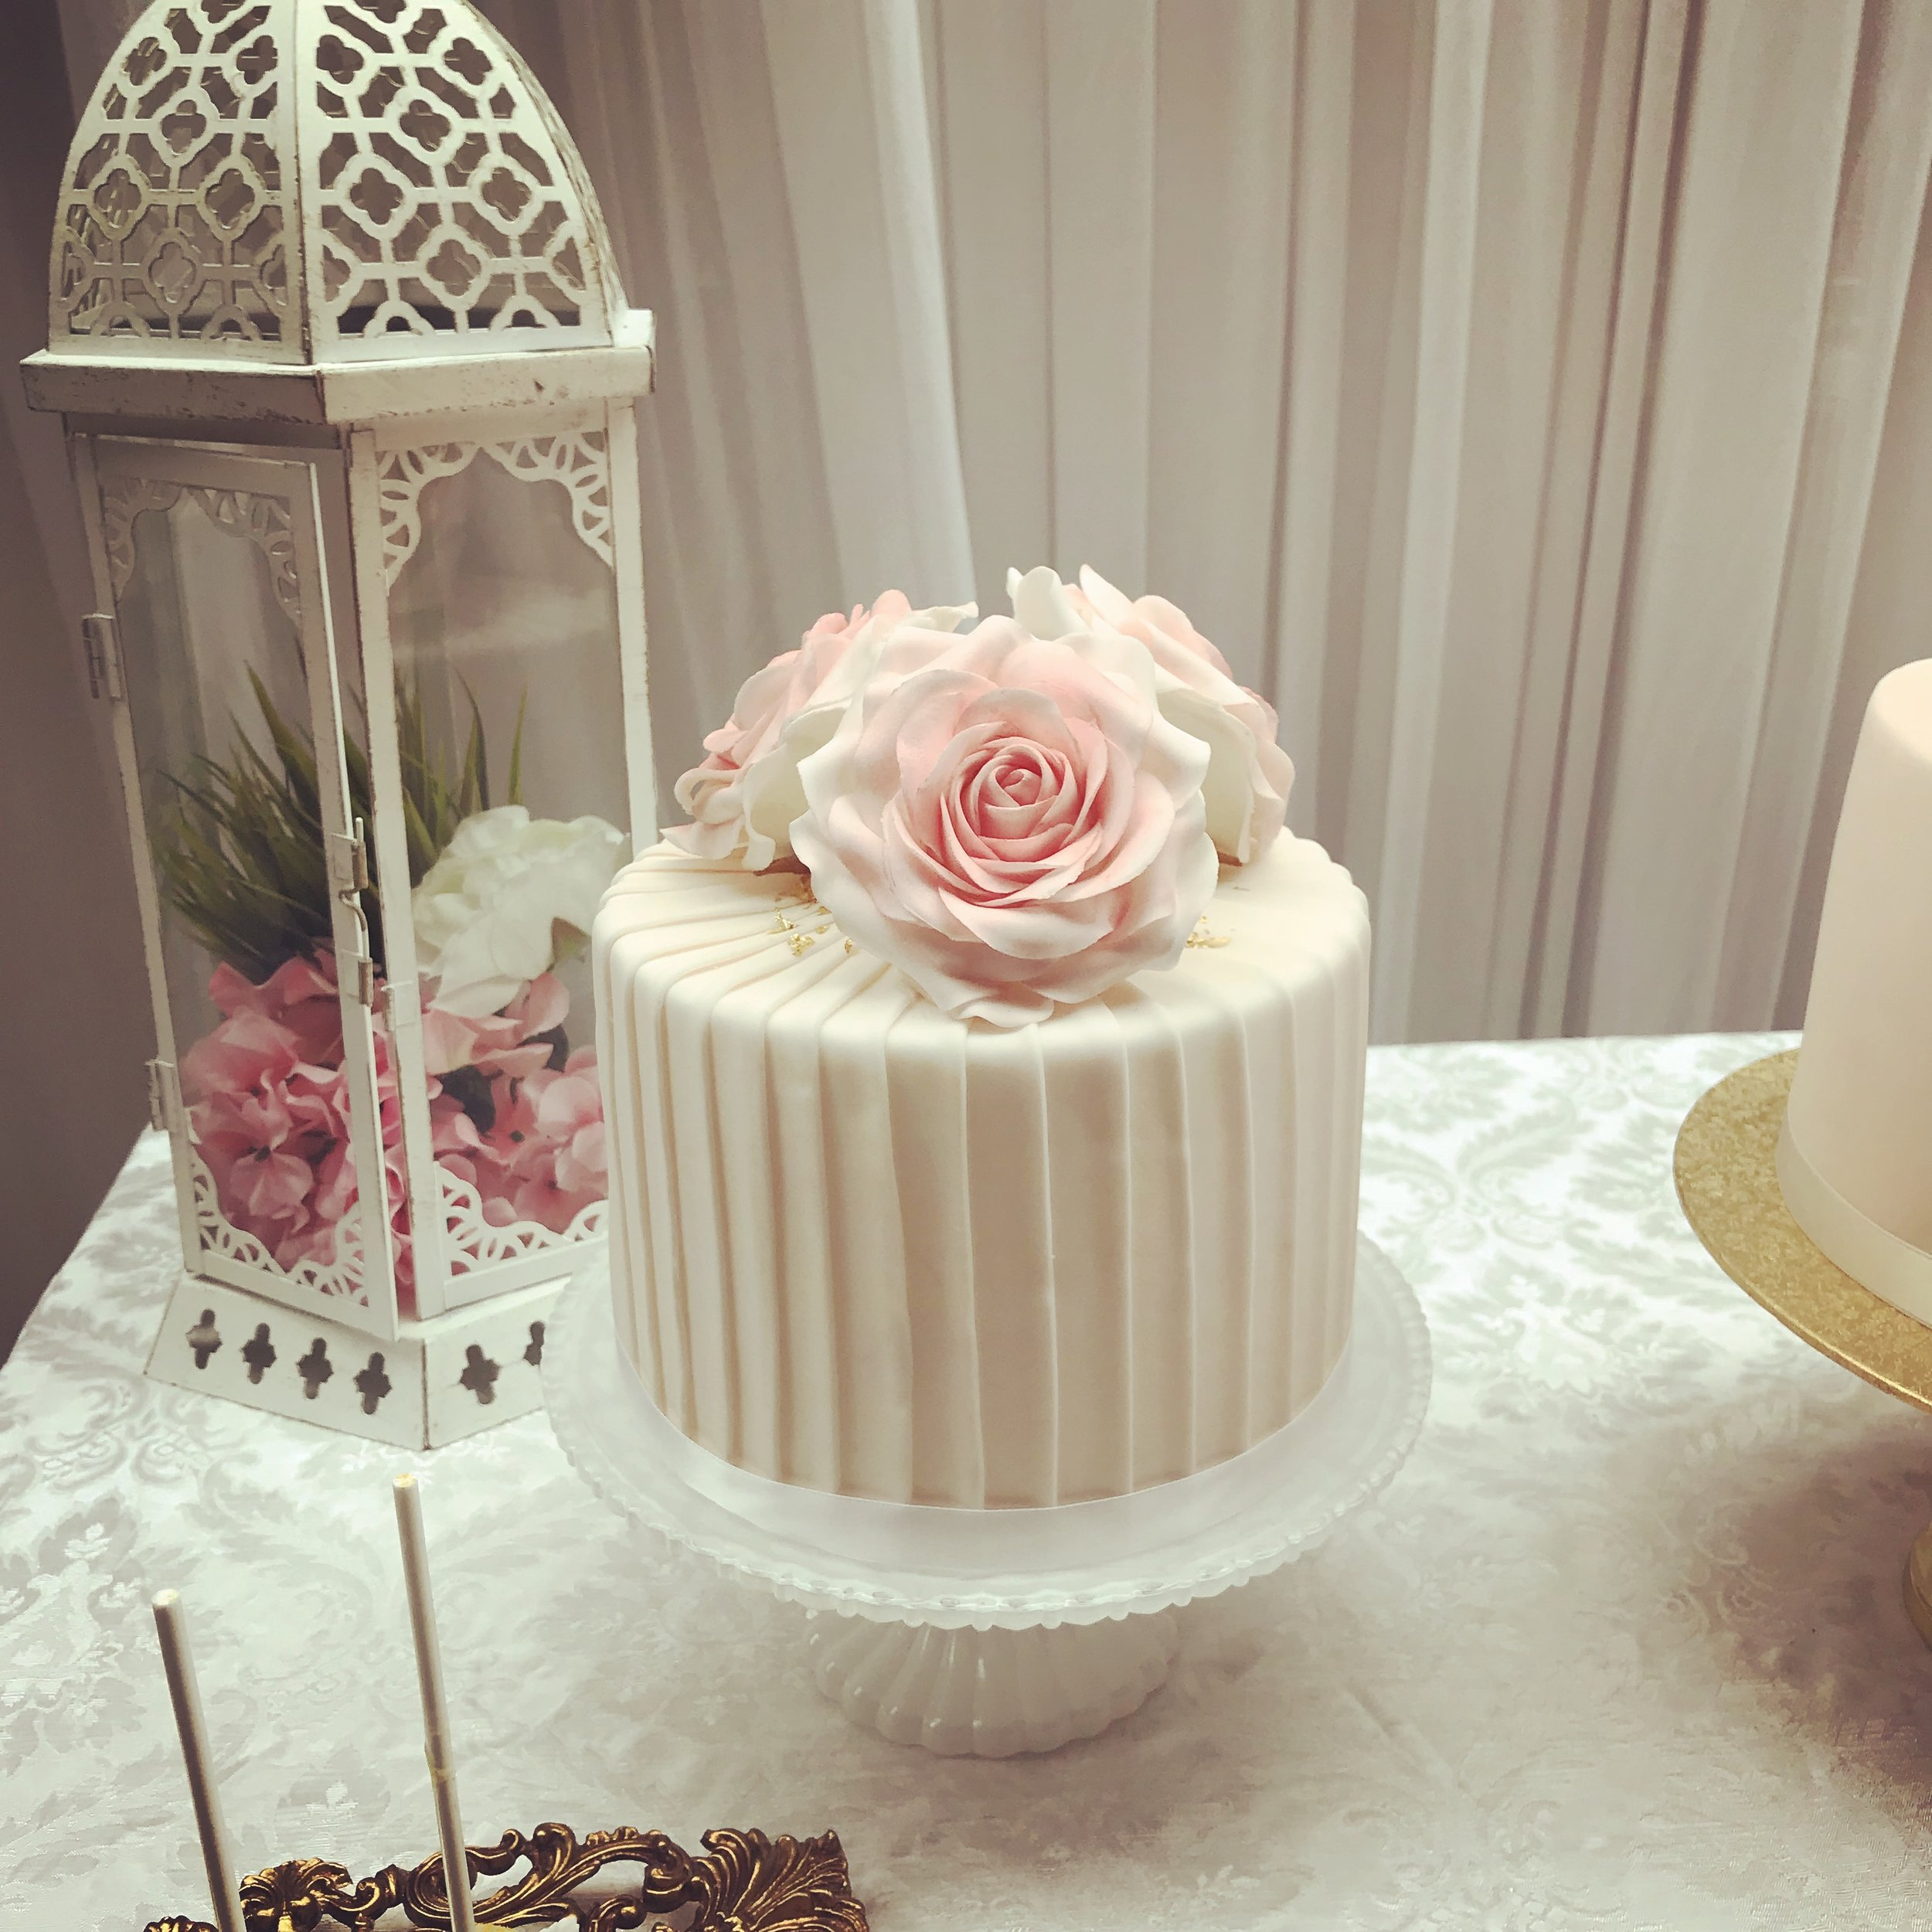 Pink sugar roses with sprinkles of gold on a pink pastel stripped wedding cake is a perfect choice for a vintage wedding too.